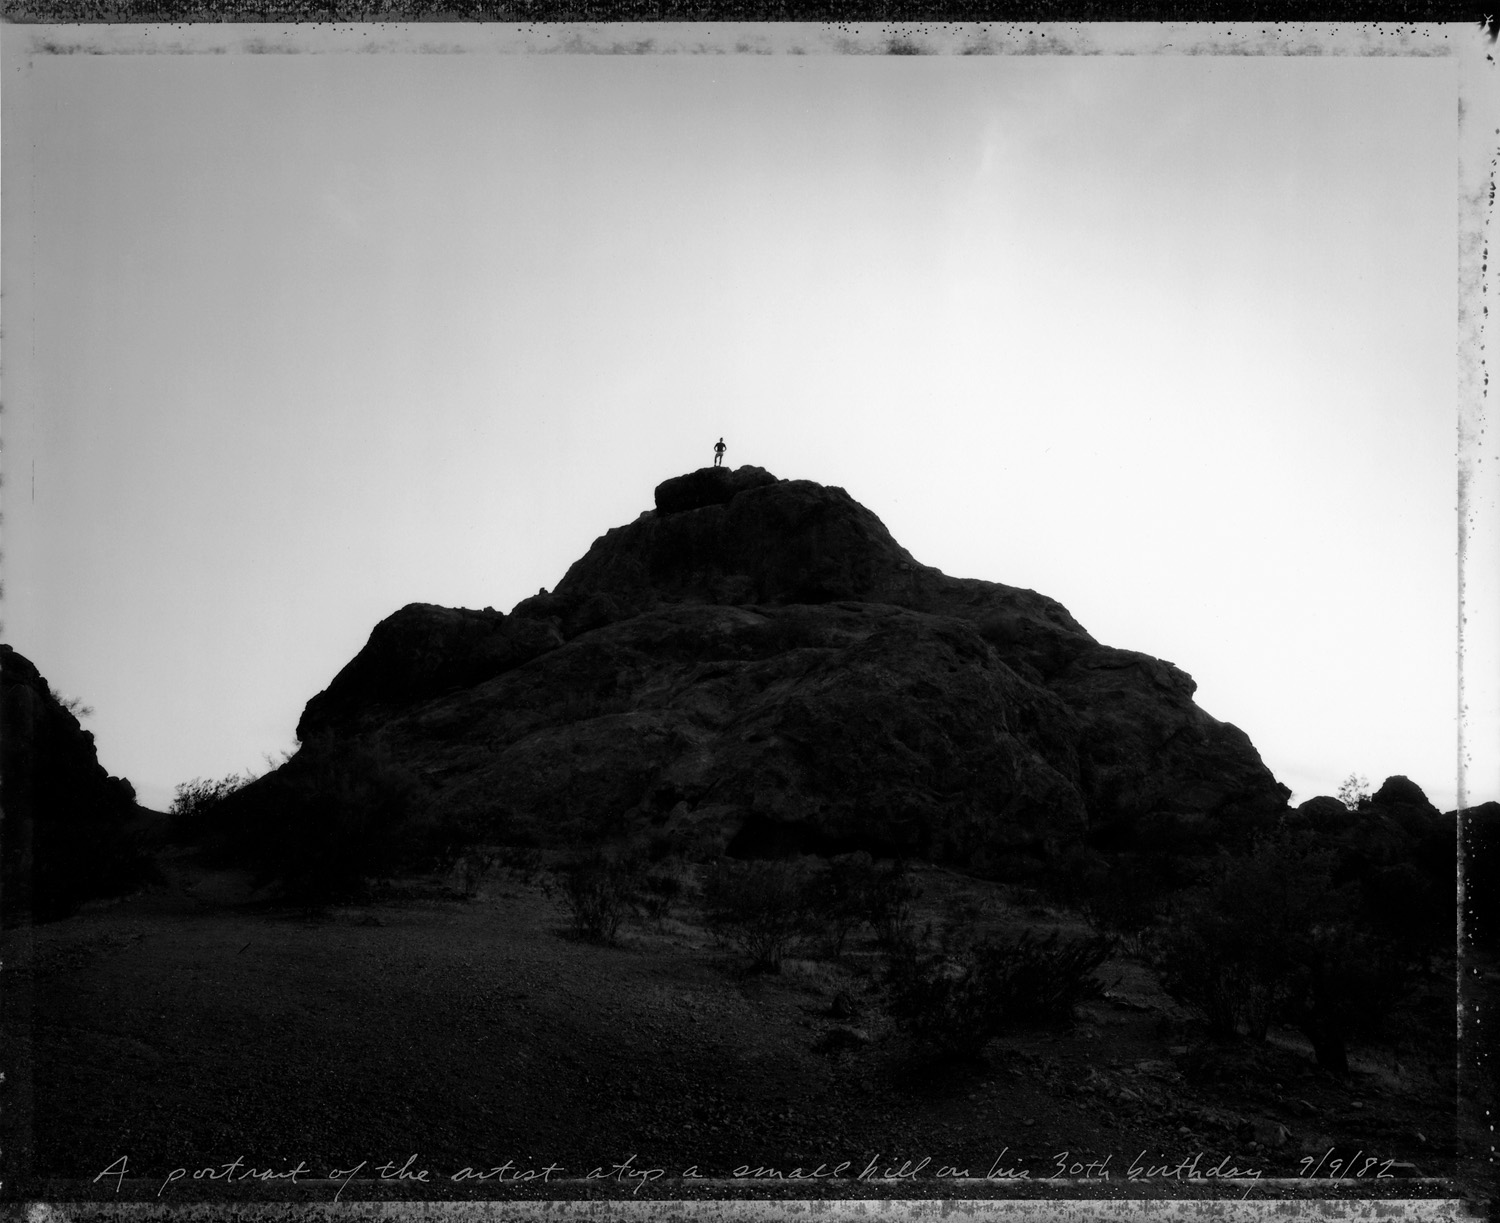 A portrait of the artist atop a small hill on his 30th birthday, Phoenix, 1982